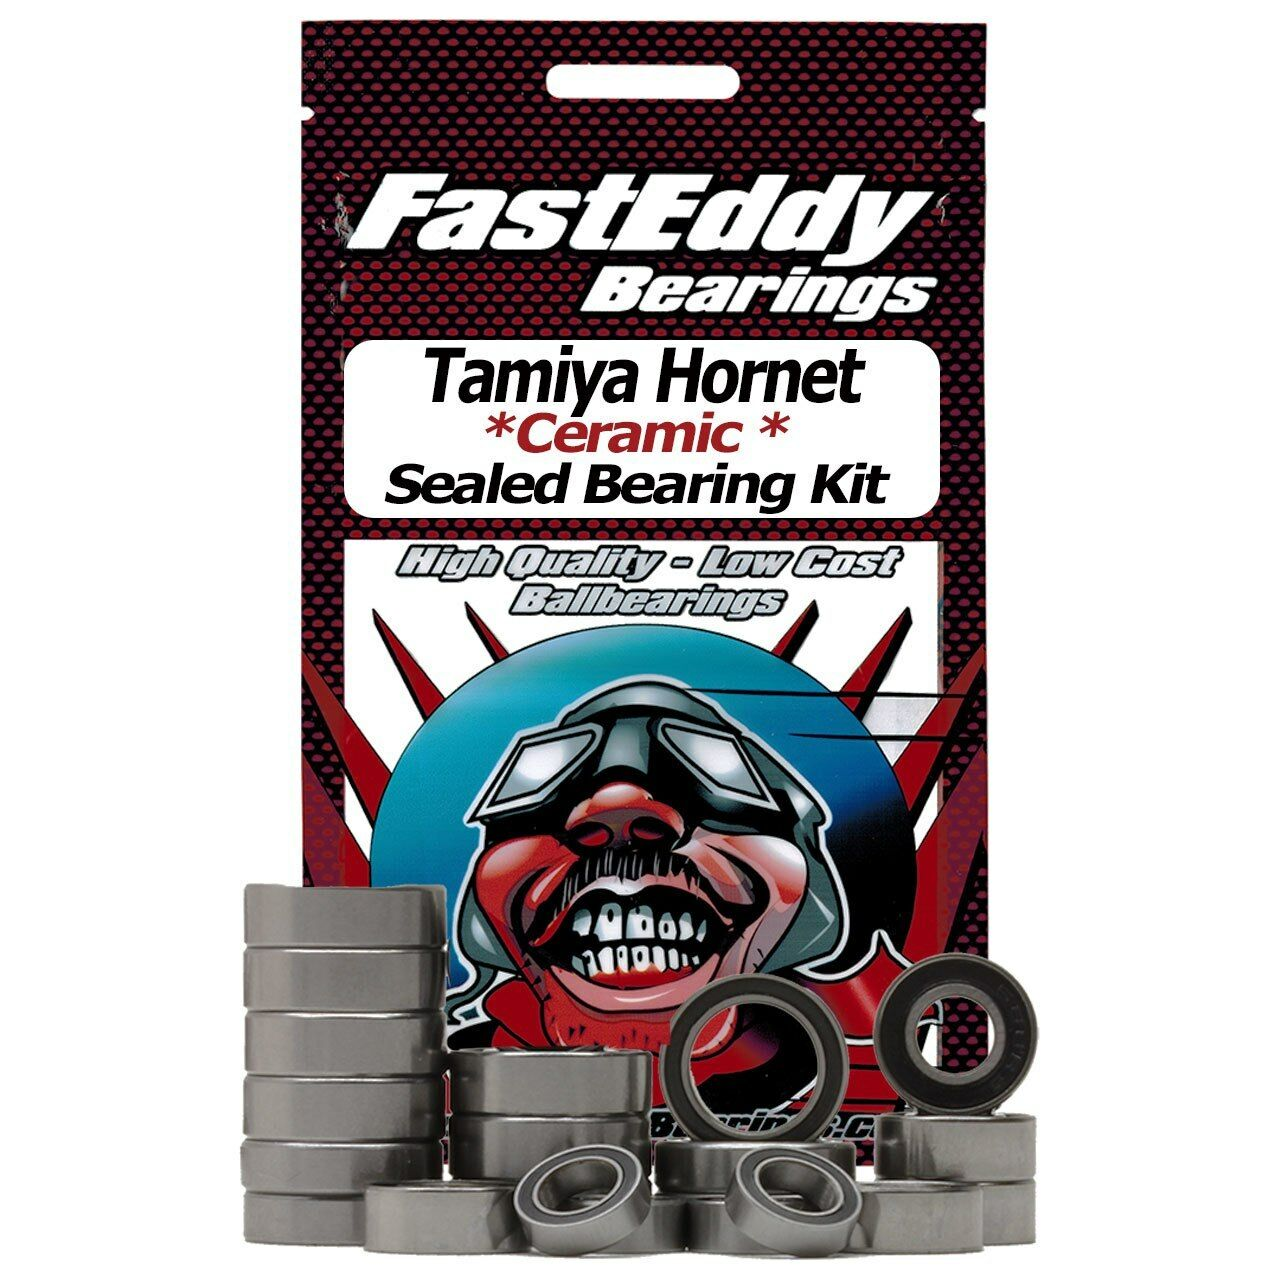 Tamiya The Hornet By Jun Watanabe XB (58043) Ceramic Rubber Sealed Bearing Kit